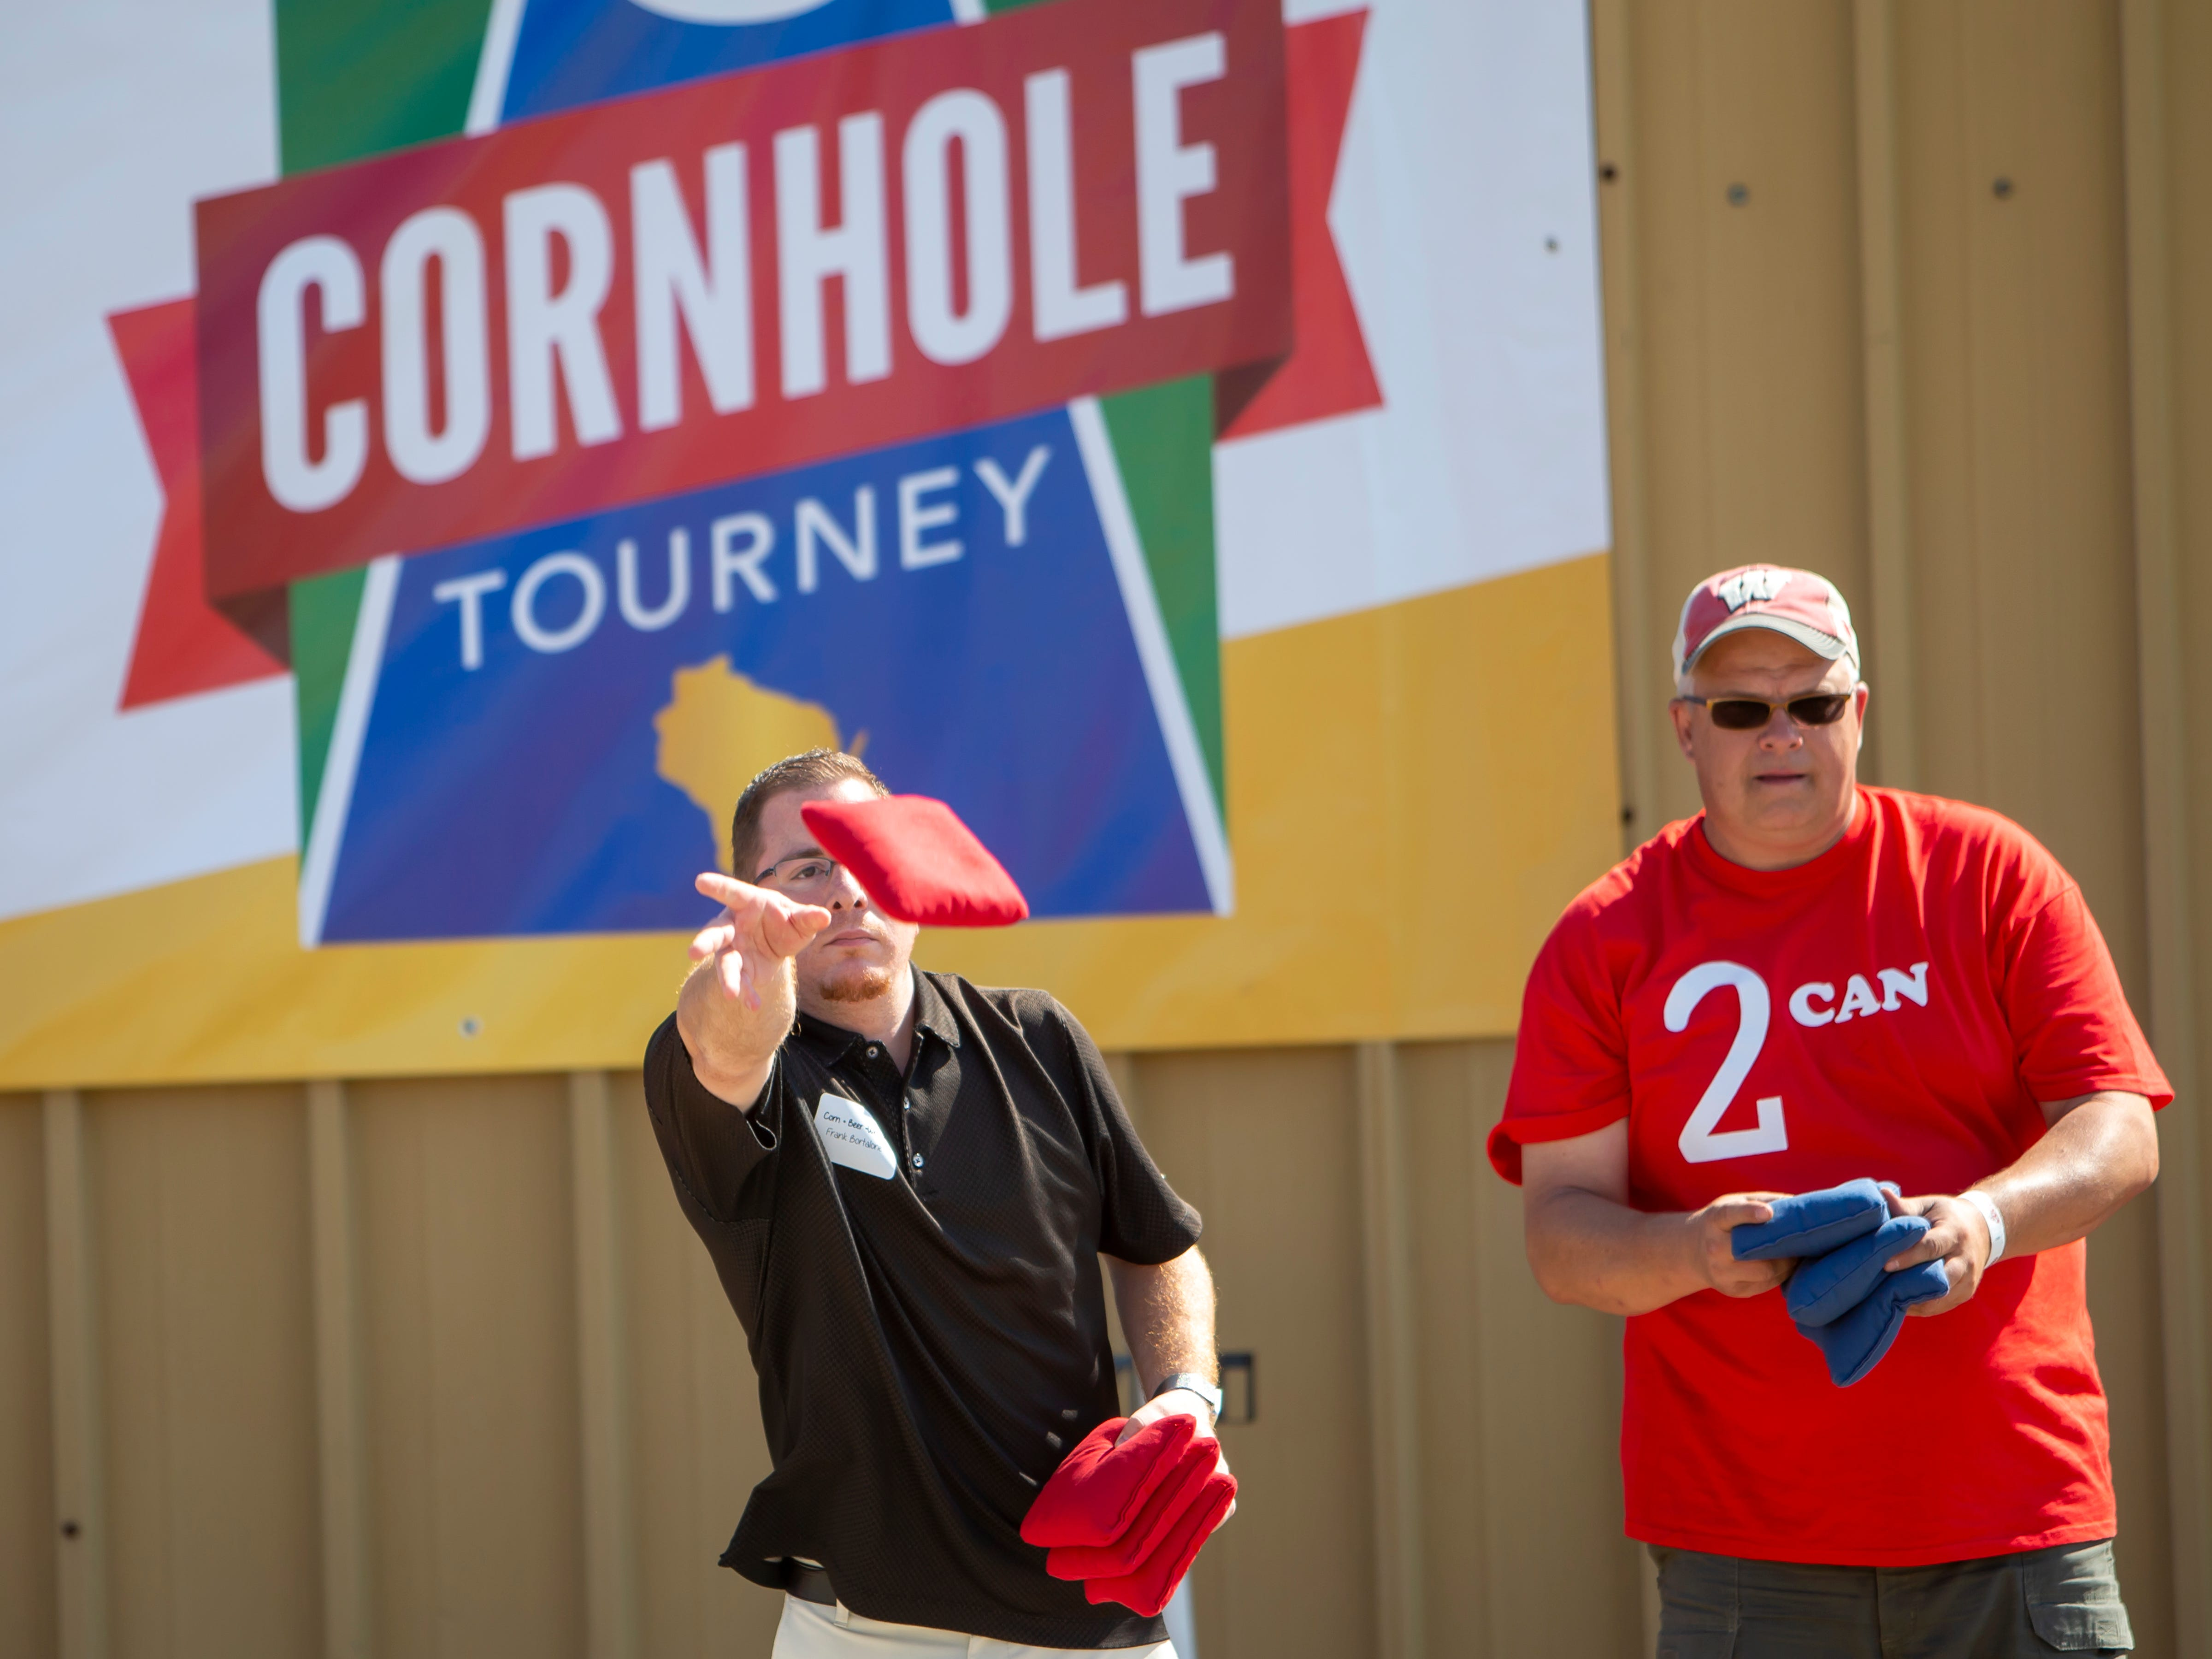 People on board with the growing sport of cornhole